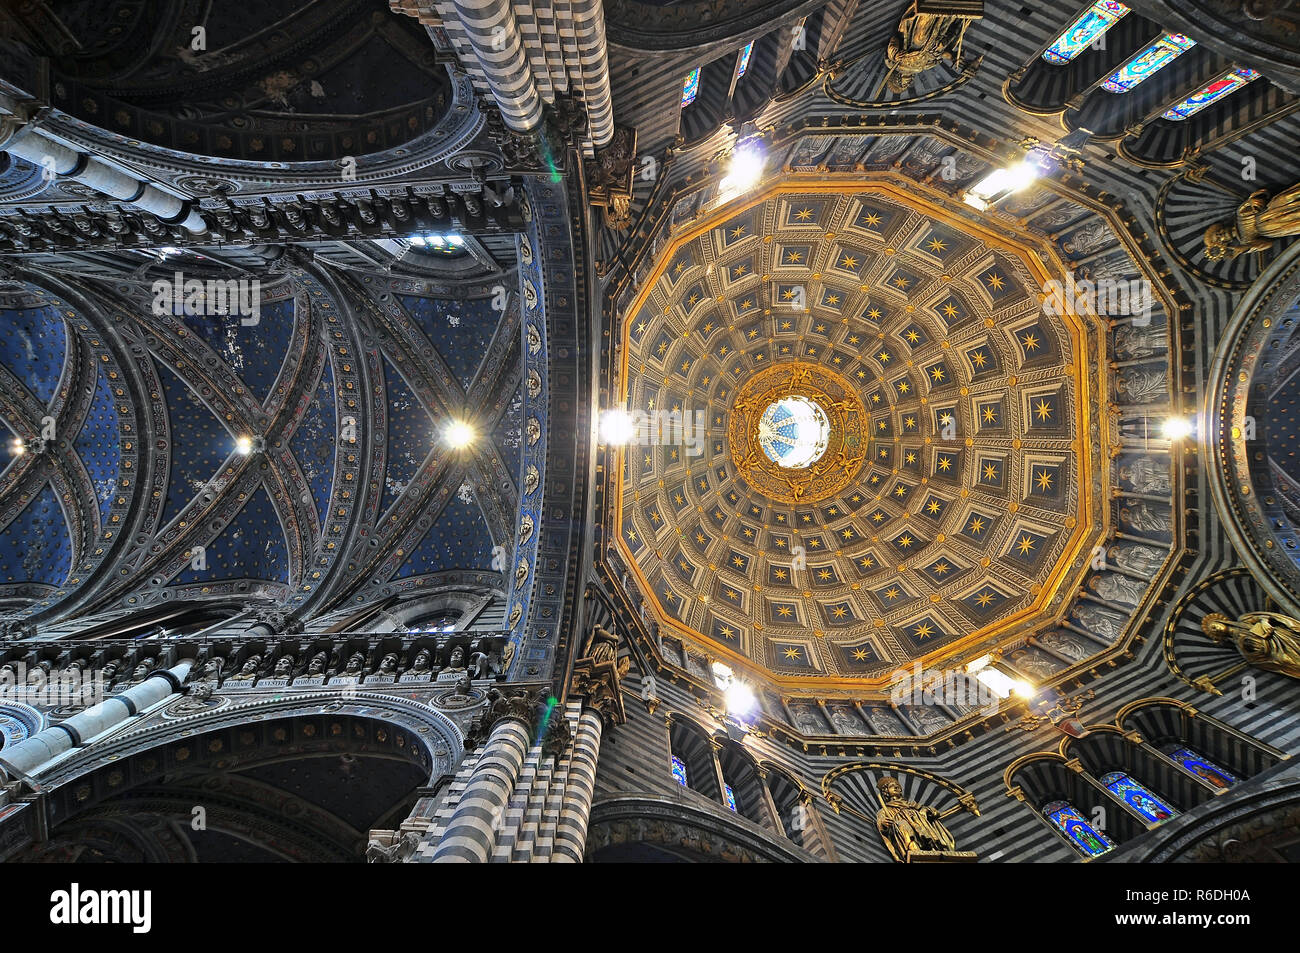 Looking Up To The Inside Of The Dome In The Cattedrale Dell'Assunta (The Cathedral Of Saint Mary Of The Assumption In The Piazza Del Duomo Inb Siena,  - Stock Image